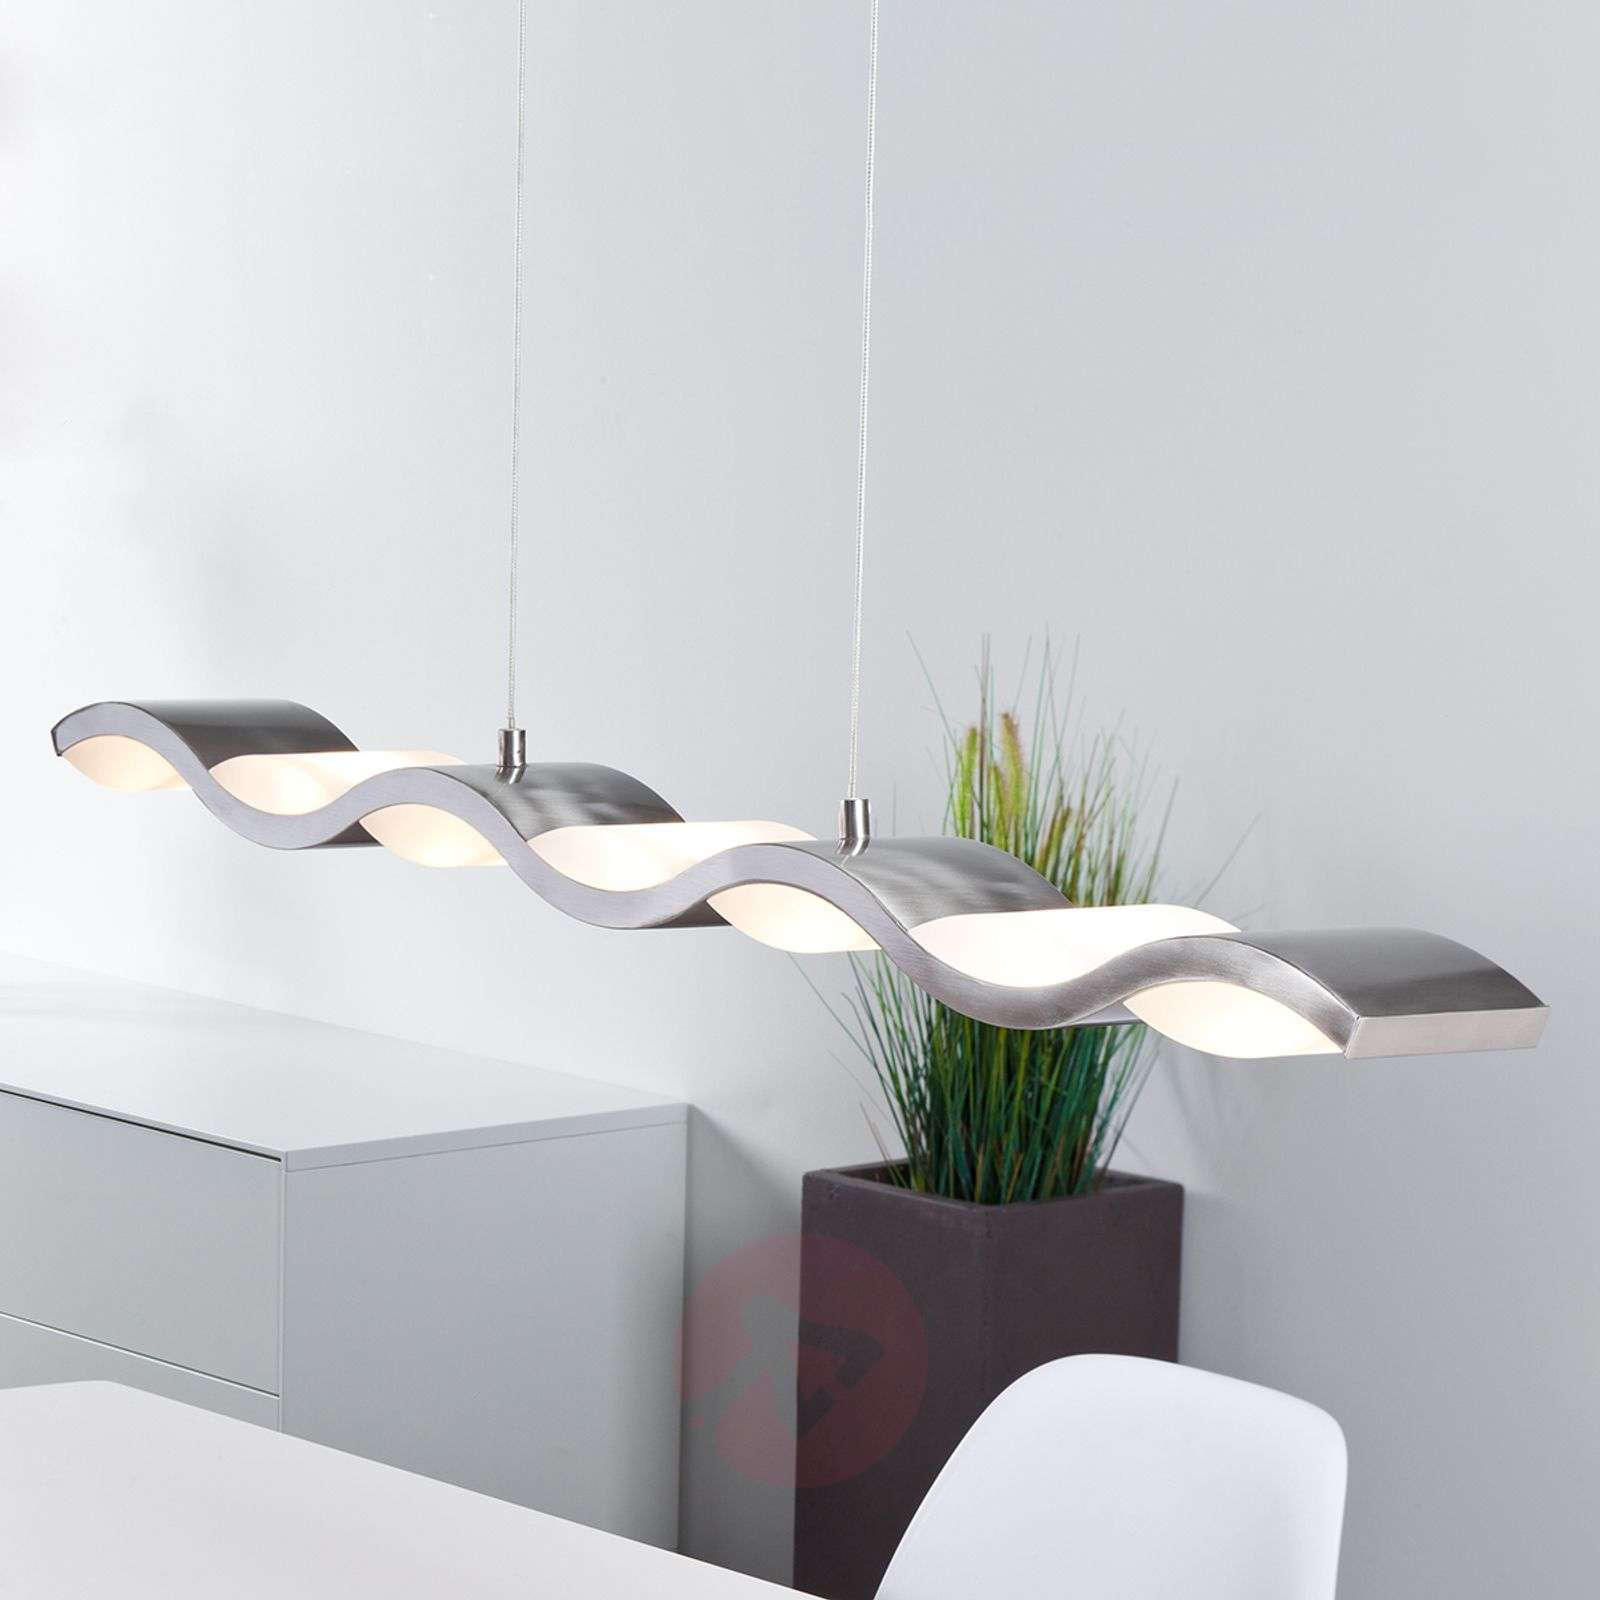 Liquid dimmable LED pendant lamp, wave form-1509025-01